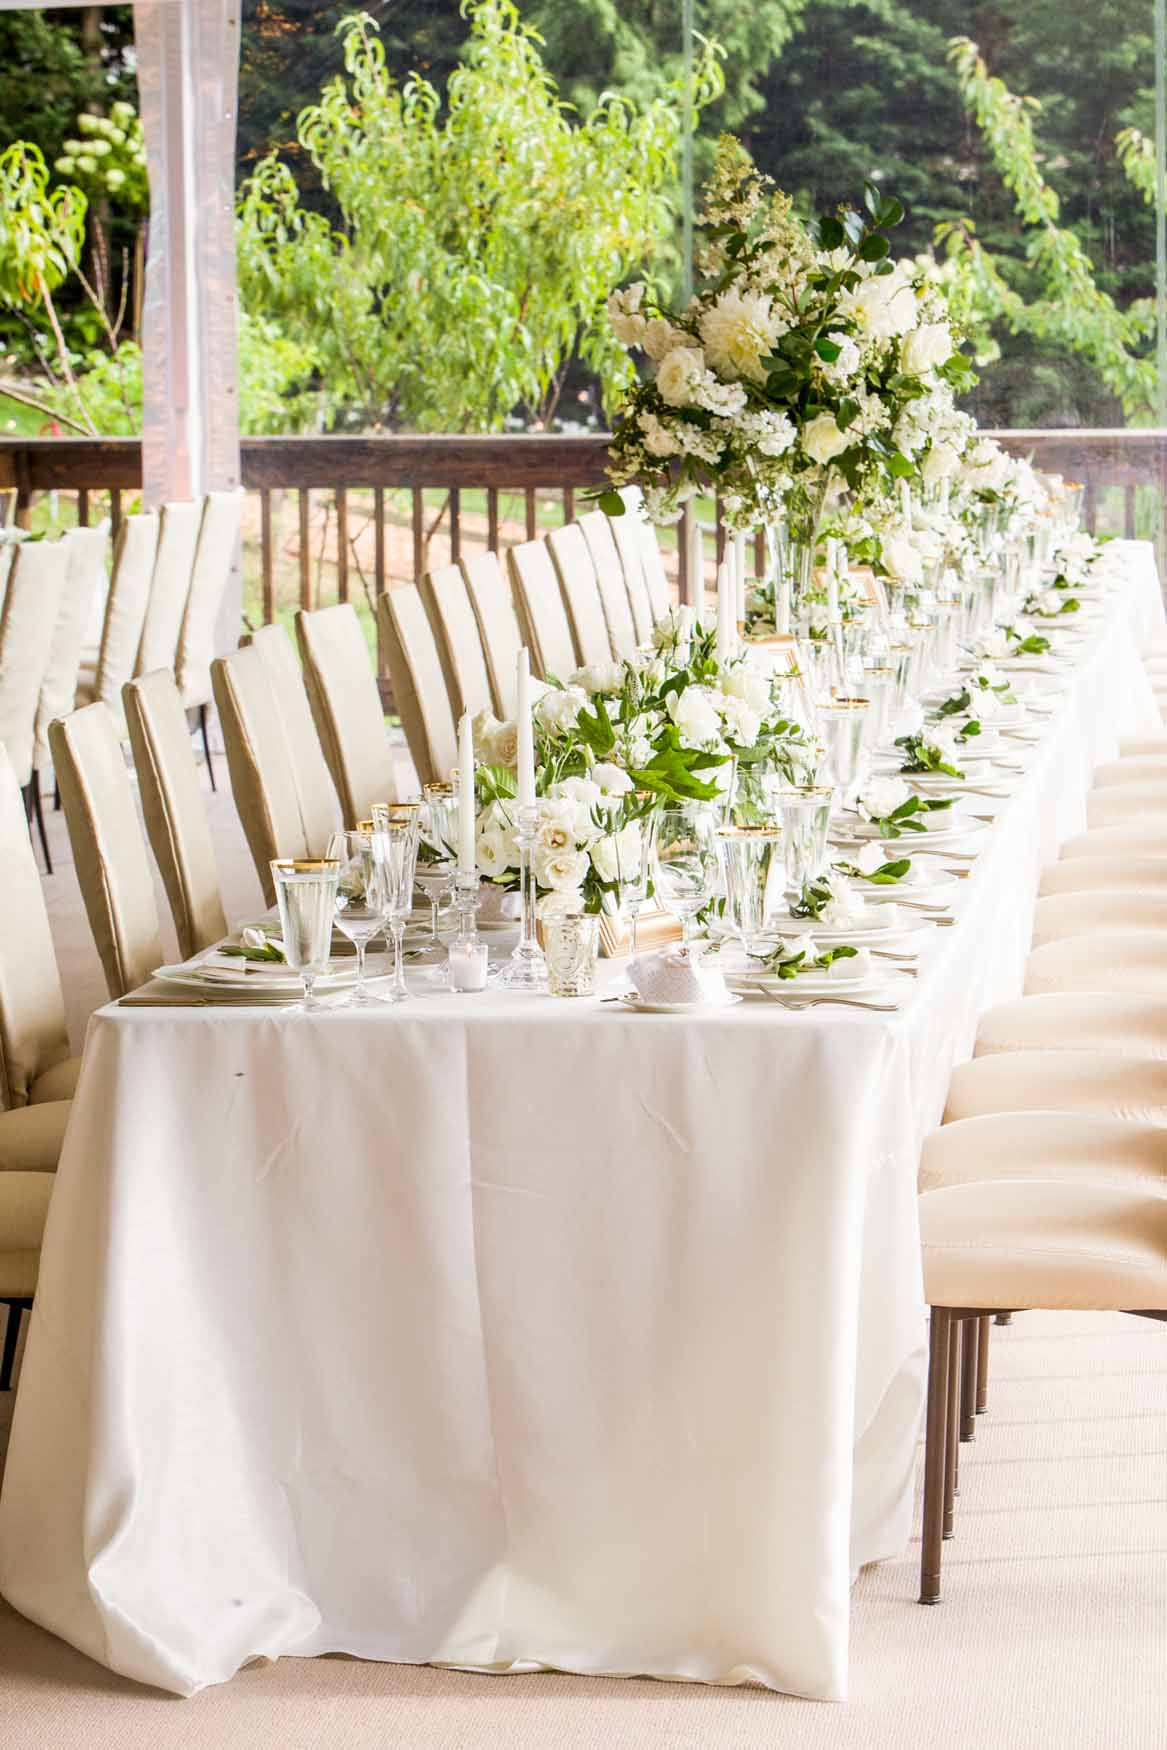 Long guest tables at wedding reception, gardenias at each place setting - Elegant Summer Private Estate Wedding. Flora Nova Design Seattle